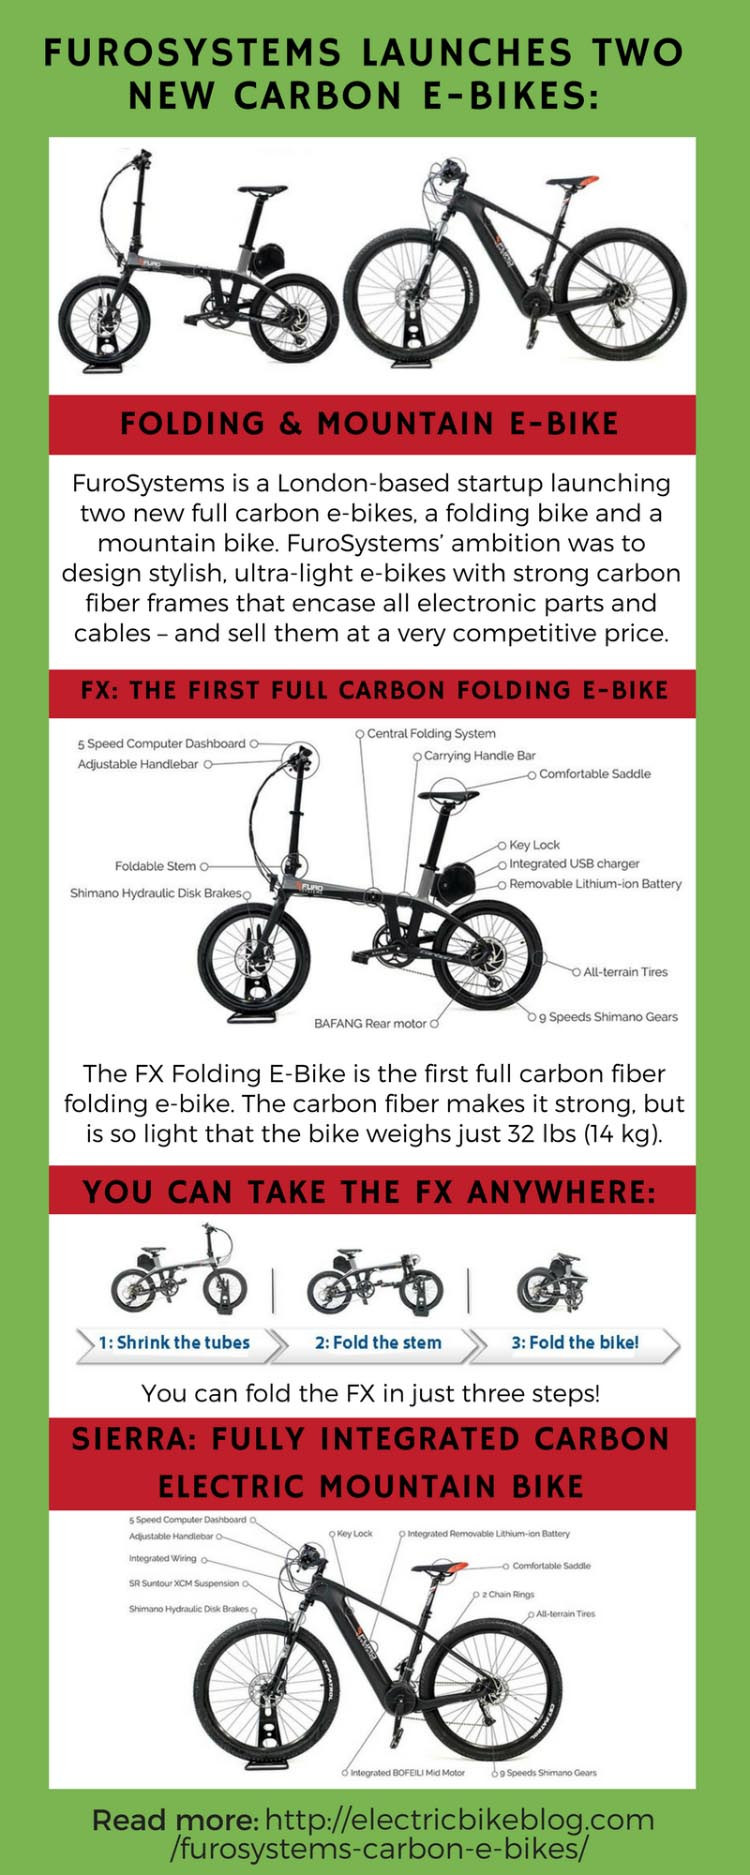 Furosystems launches two new carbon e-bikes